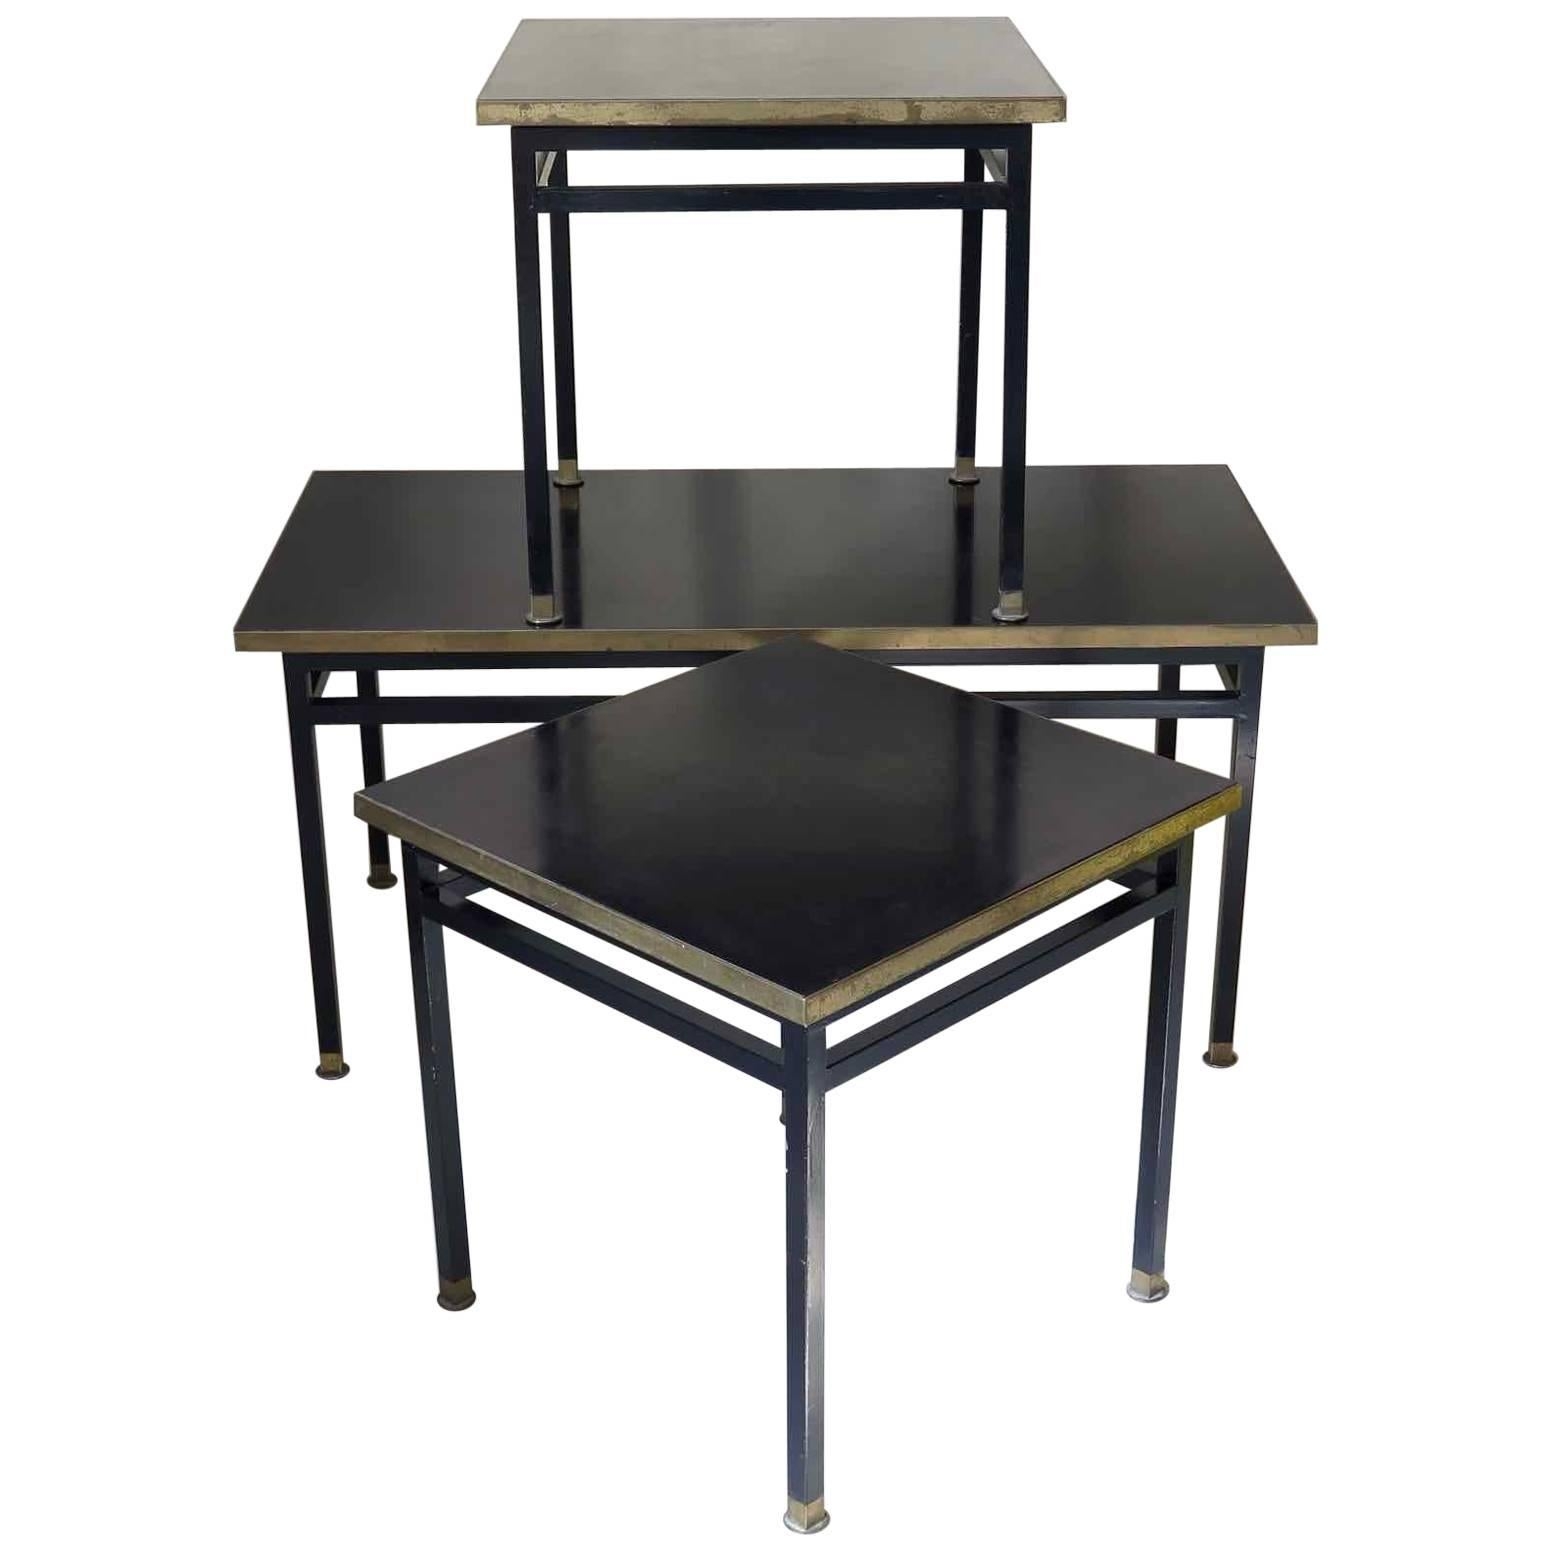 Bakelite, Brass and Iron 1950s Side Tables